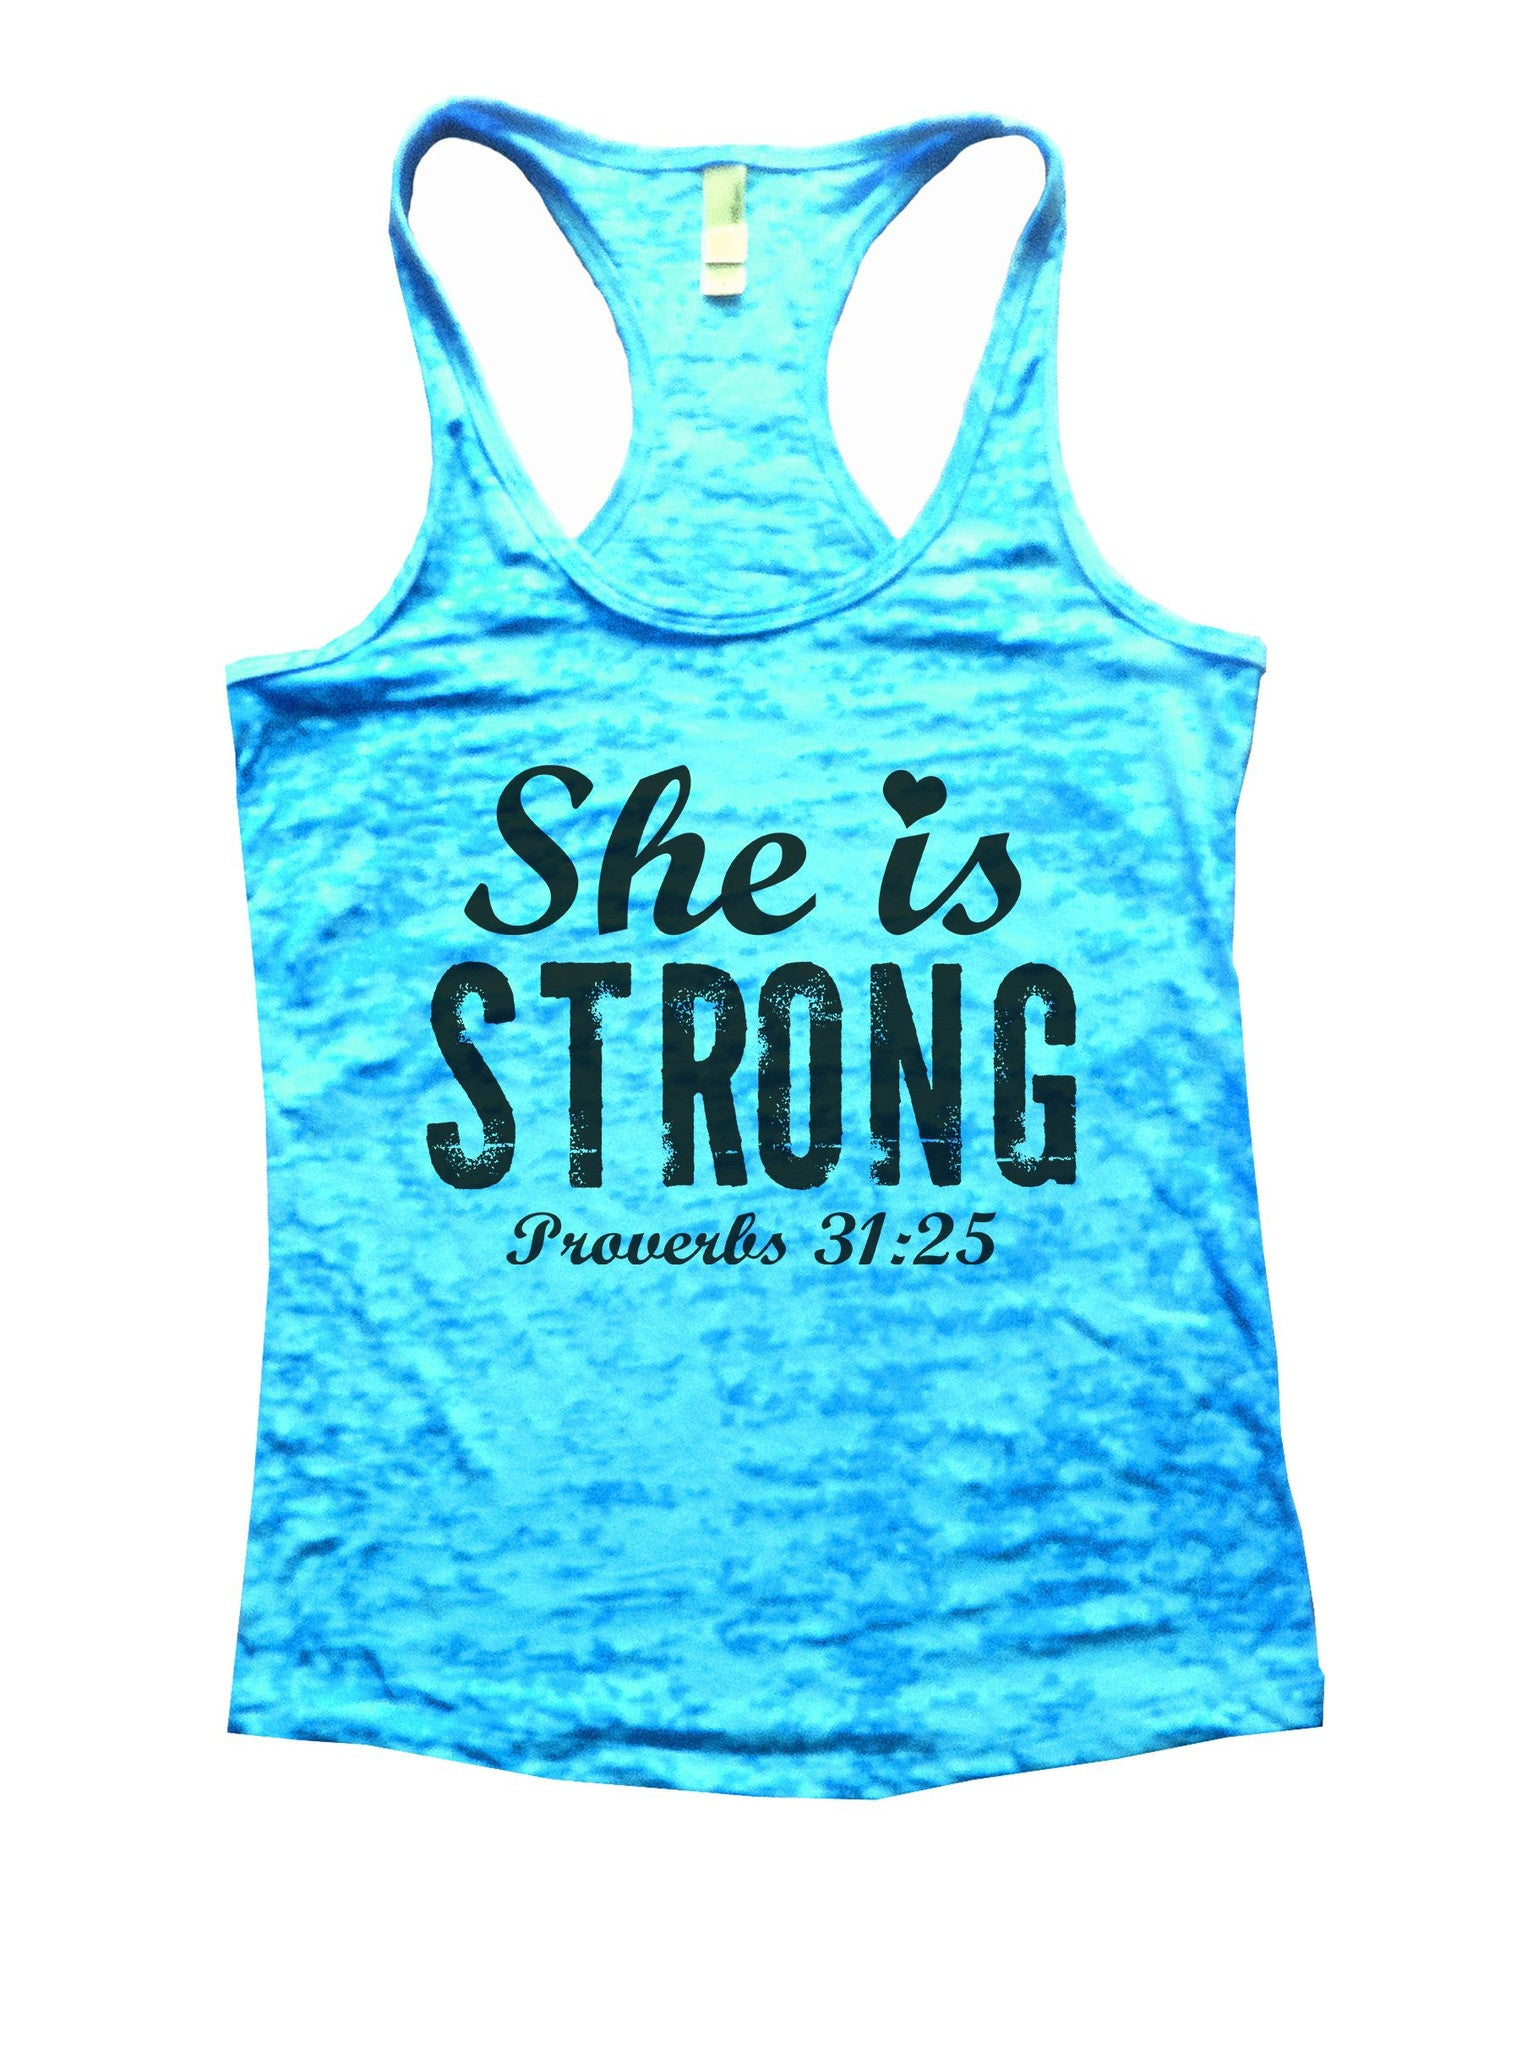 She Is Strong Proverbs 31:25 Burnout Tank Top By BurnoutTankTops.com - 939 - Funny Shirts Tank Tops Burnouts and Triblends  - 4